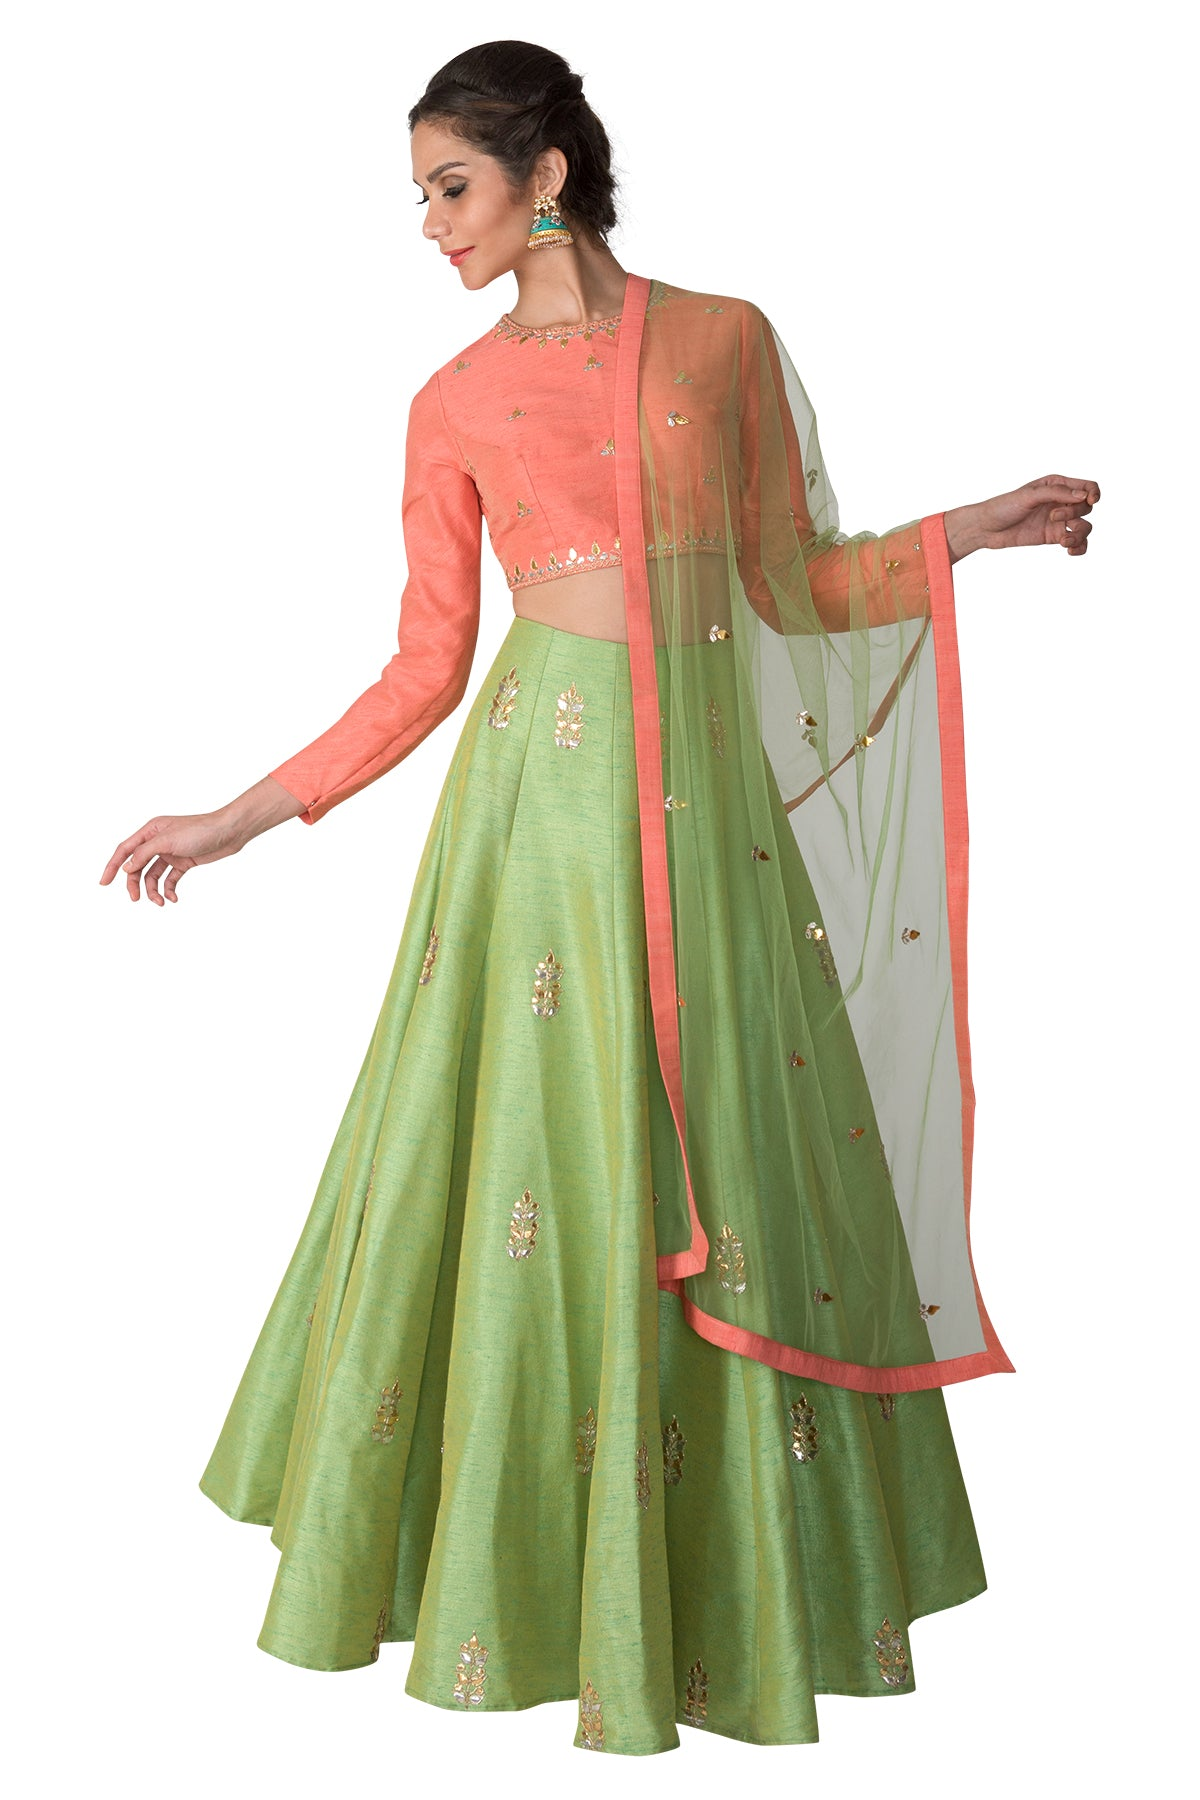 Let this outfit bring a whiff of that perfect pastel palette to your wedding wardrobe with its peach embroidered full-sleeve blouse, green gota lehenga & green net dupatta.